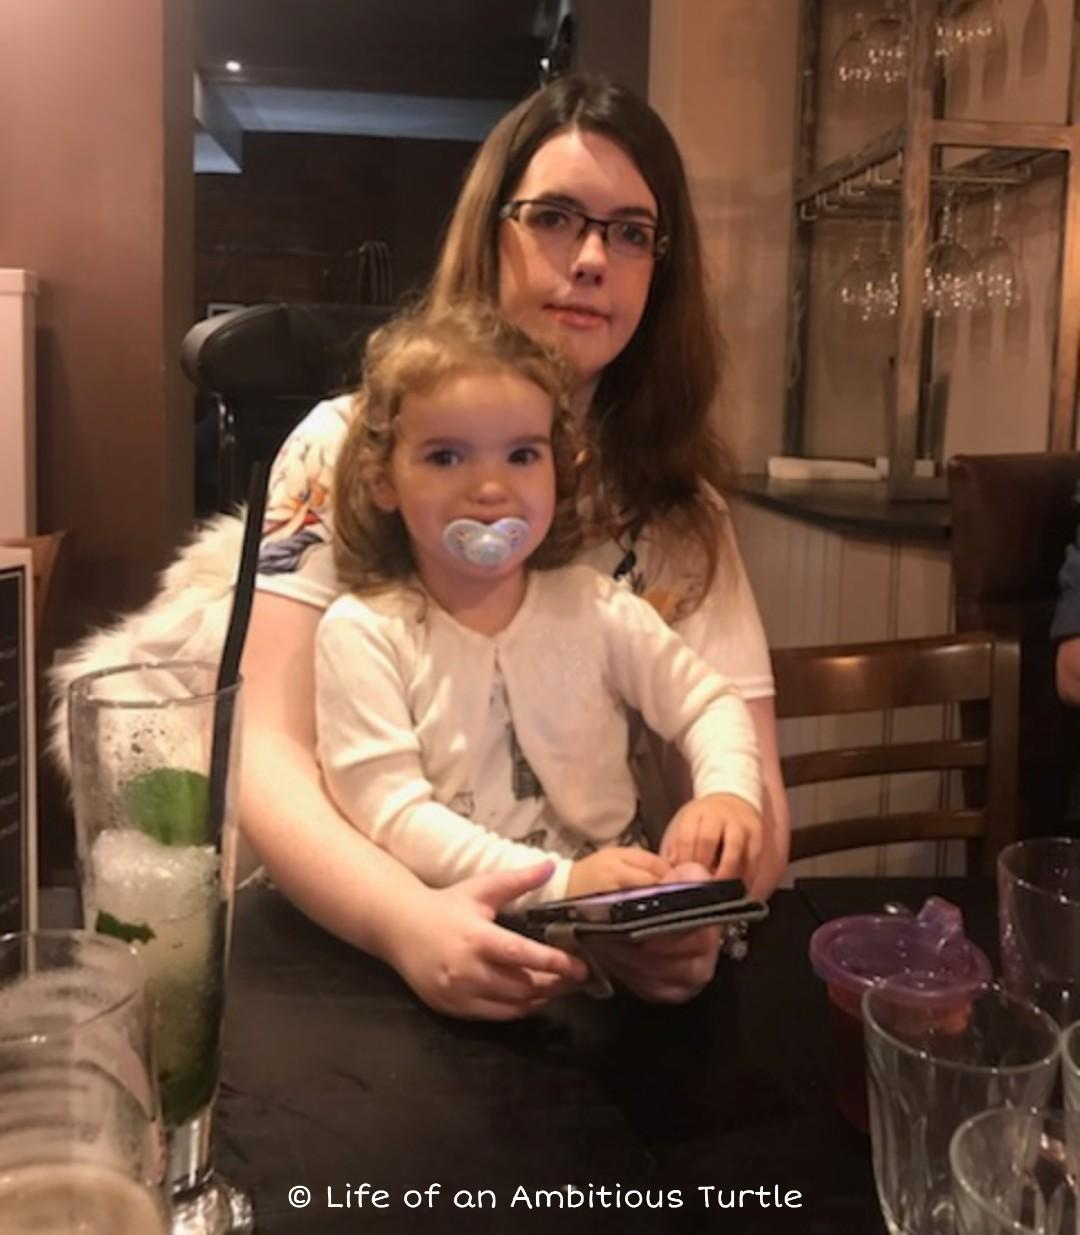 Photo of me at the table, Ava on my lap both wearing nice smart casual attire during surprise family meal at the restaurant